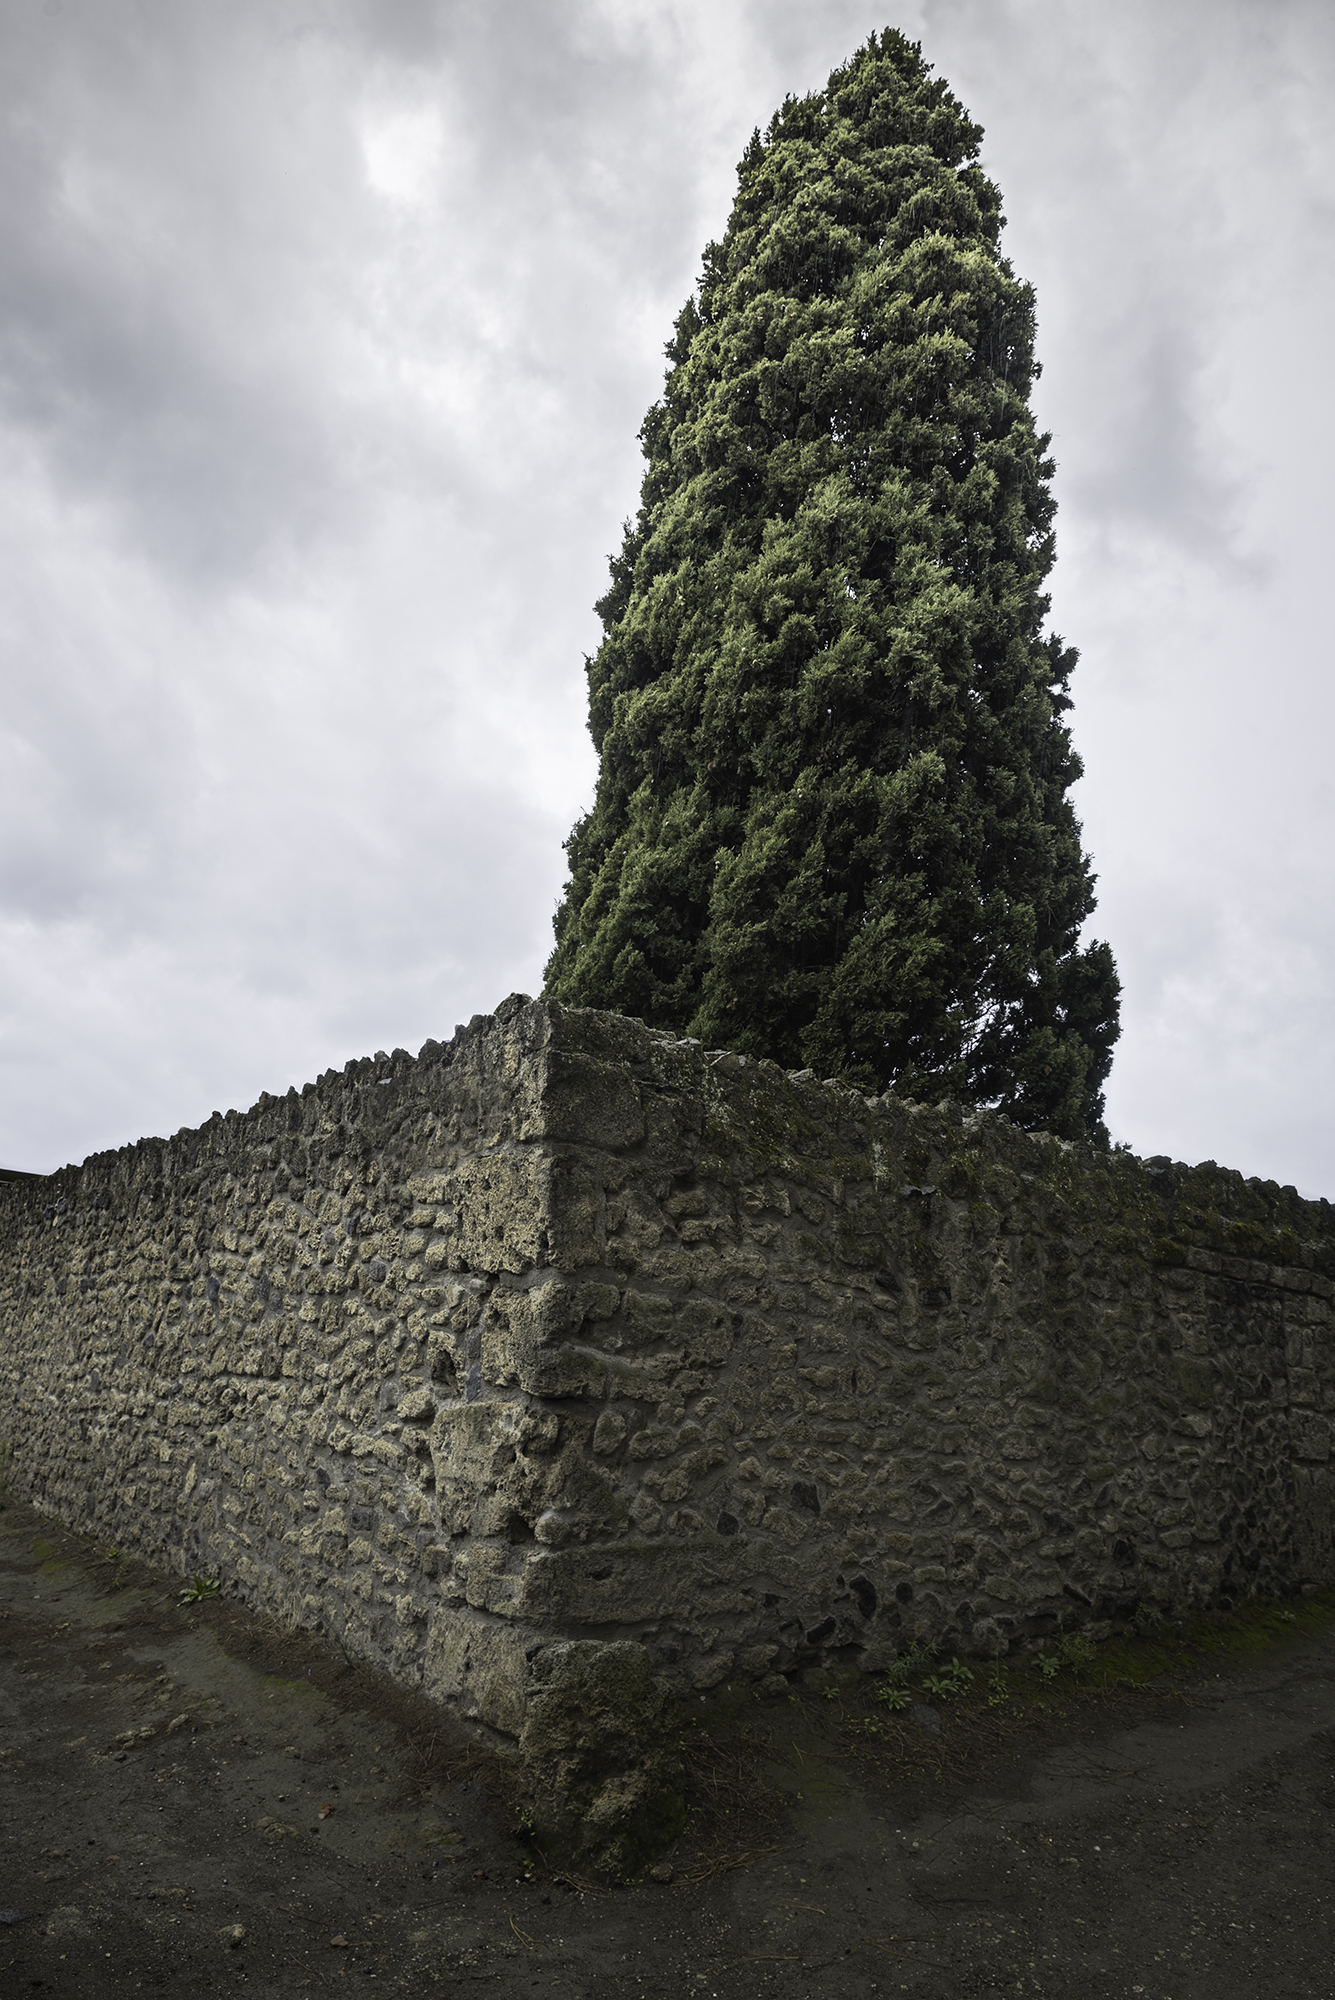 Pompeii Tree and Wall